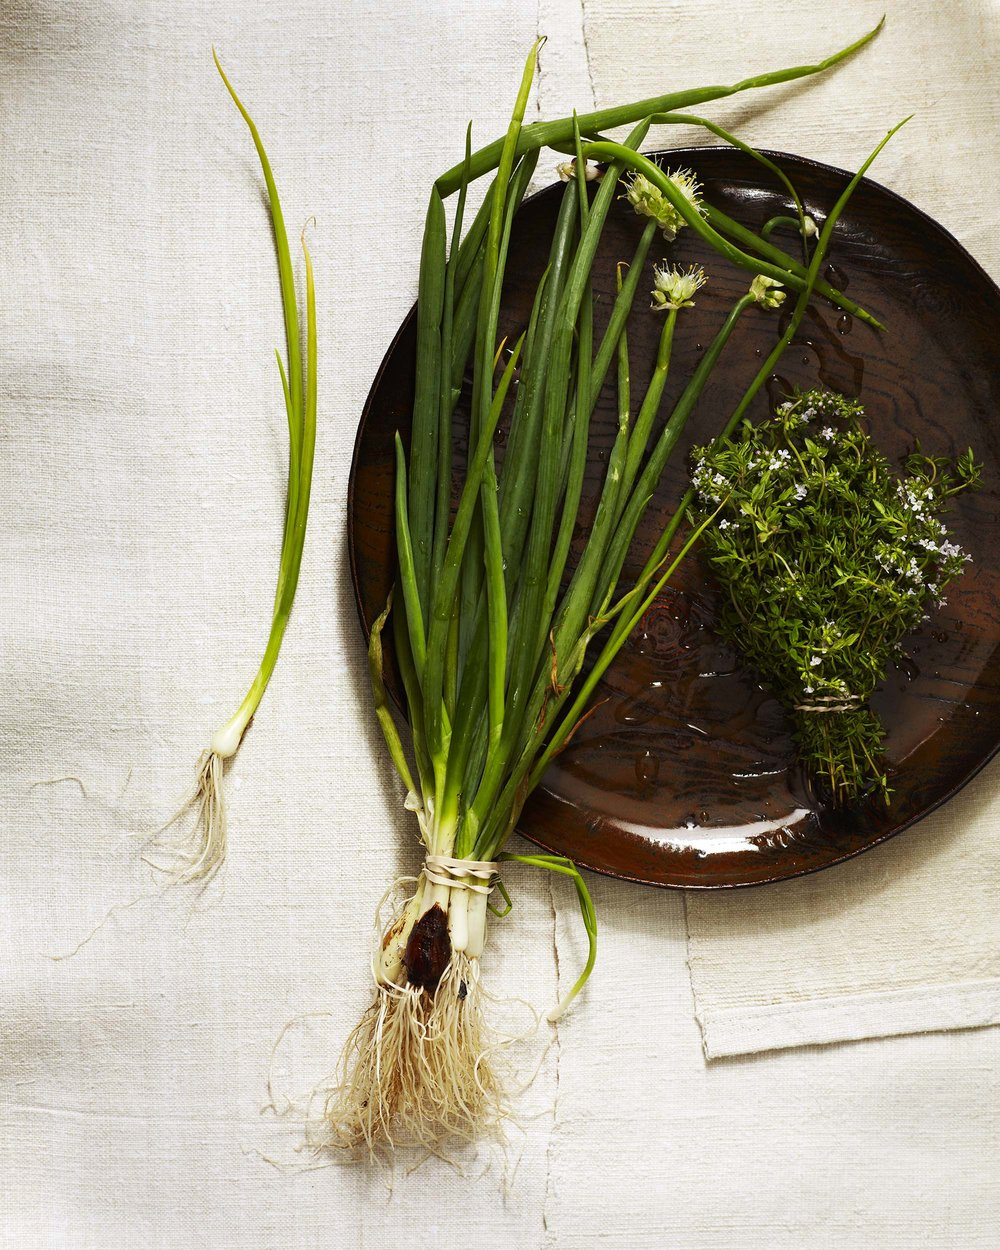 Onions-and-Thyme_0010.jpg